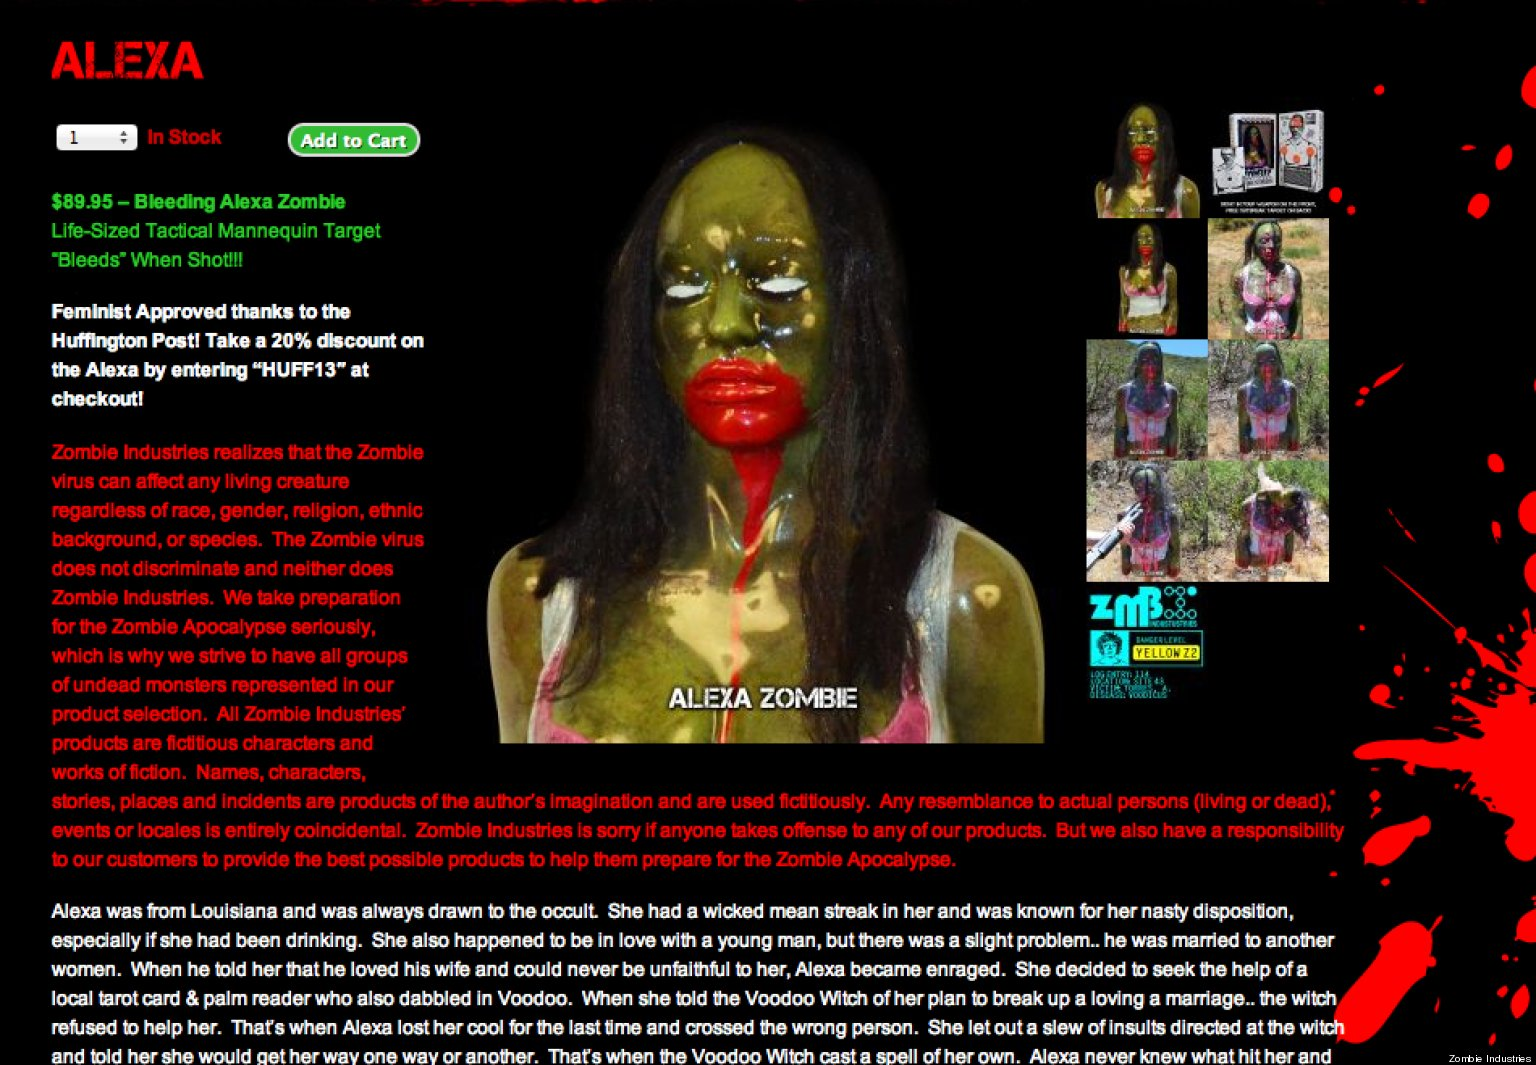 Zombie Maker Razzes HuffPost Over Female Bleeding Target